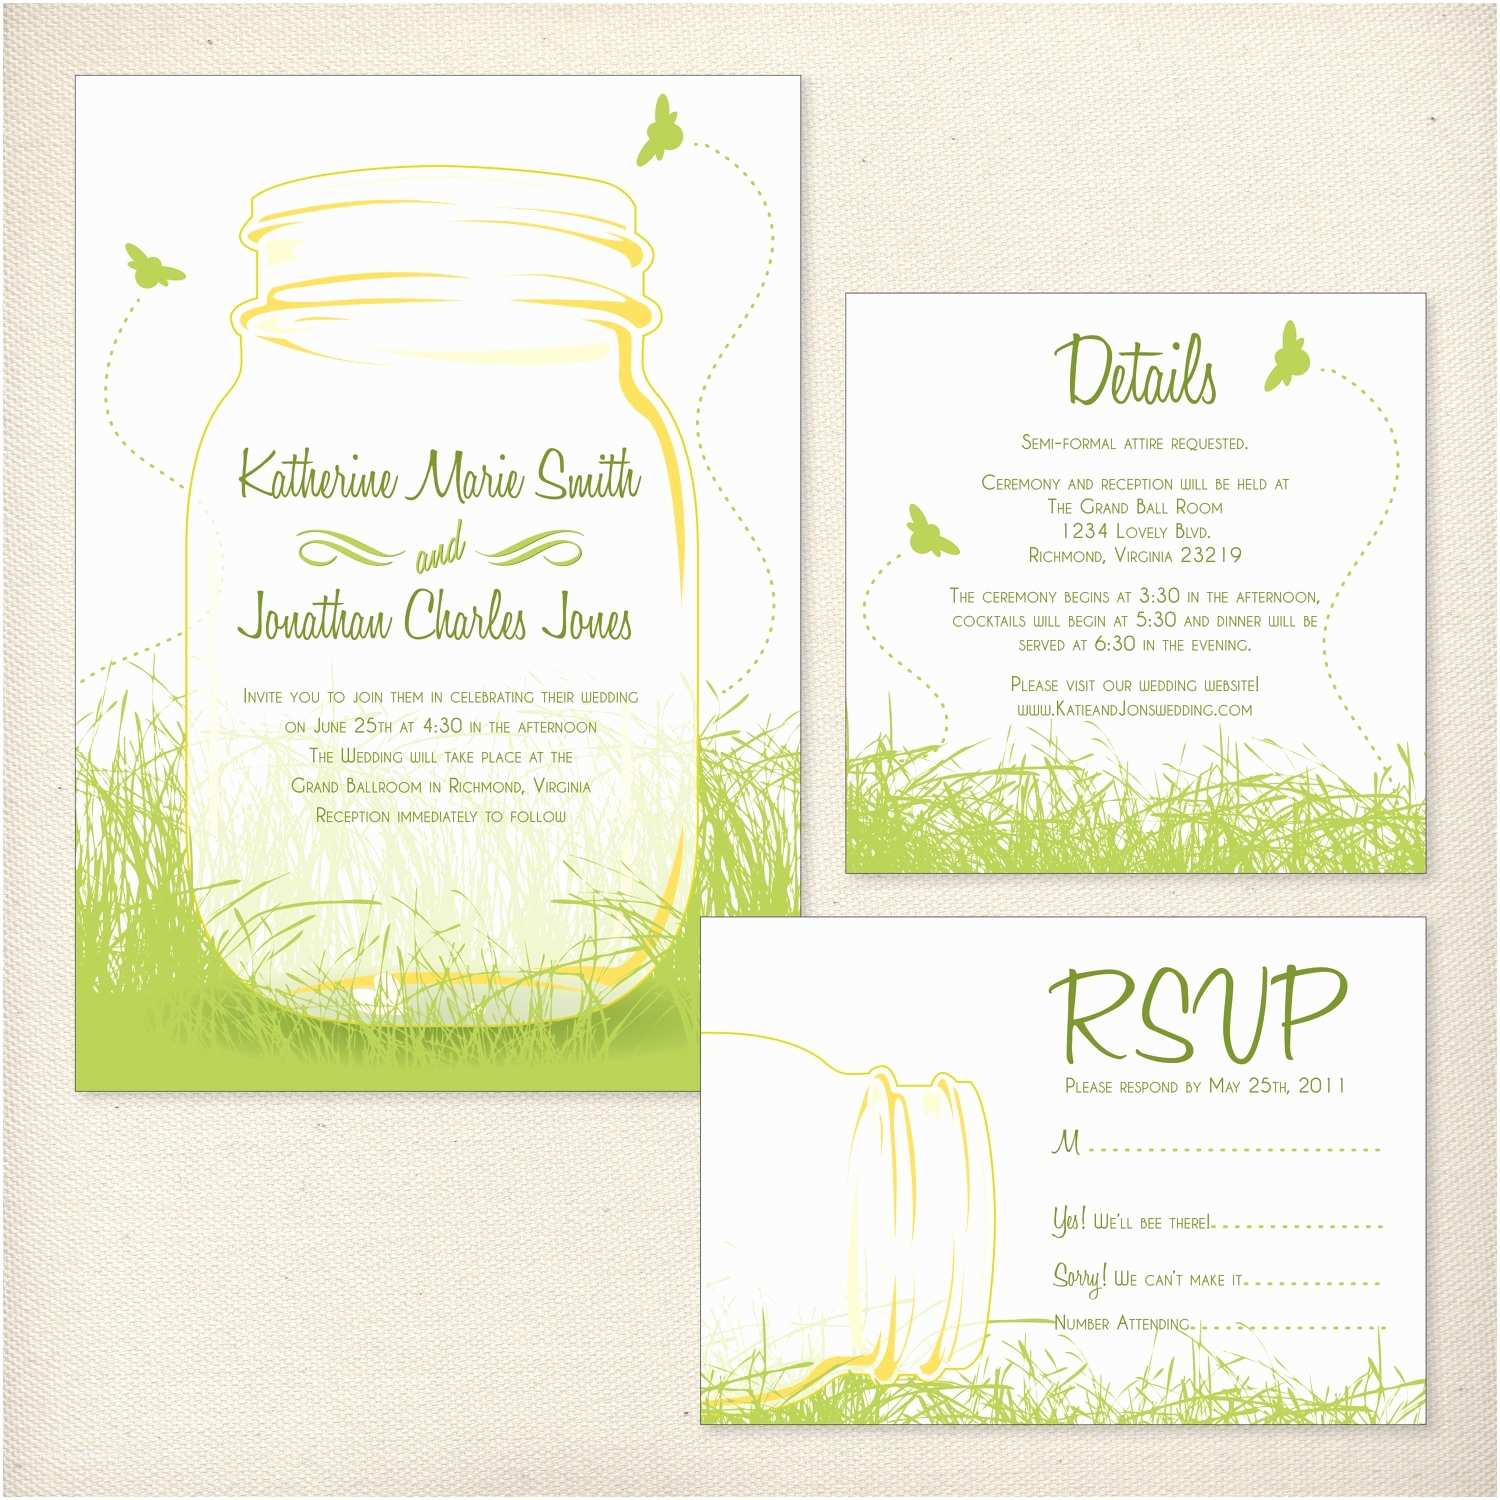 Making Wedding Invitations at Home How to Make Wedding Invitations Costco Ideas with Smart